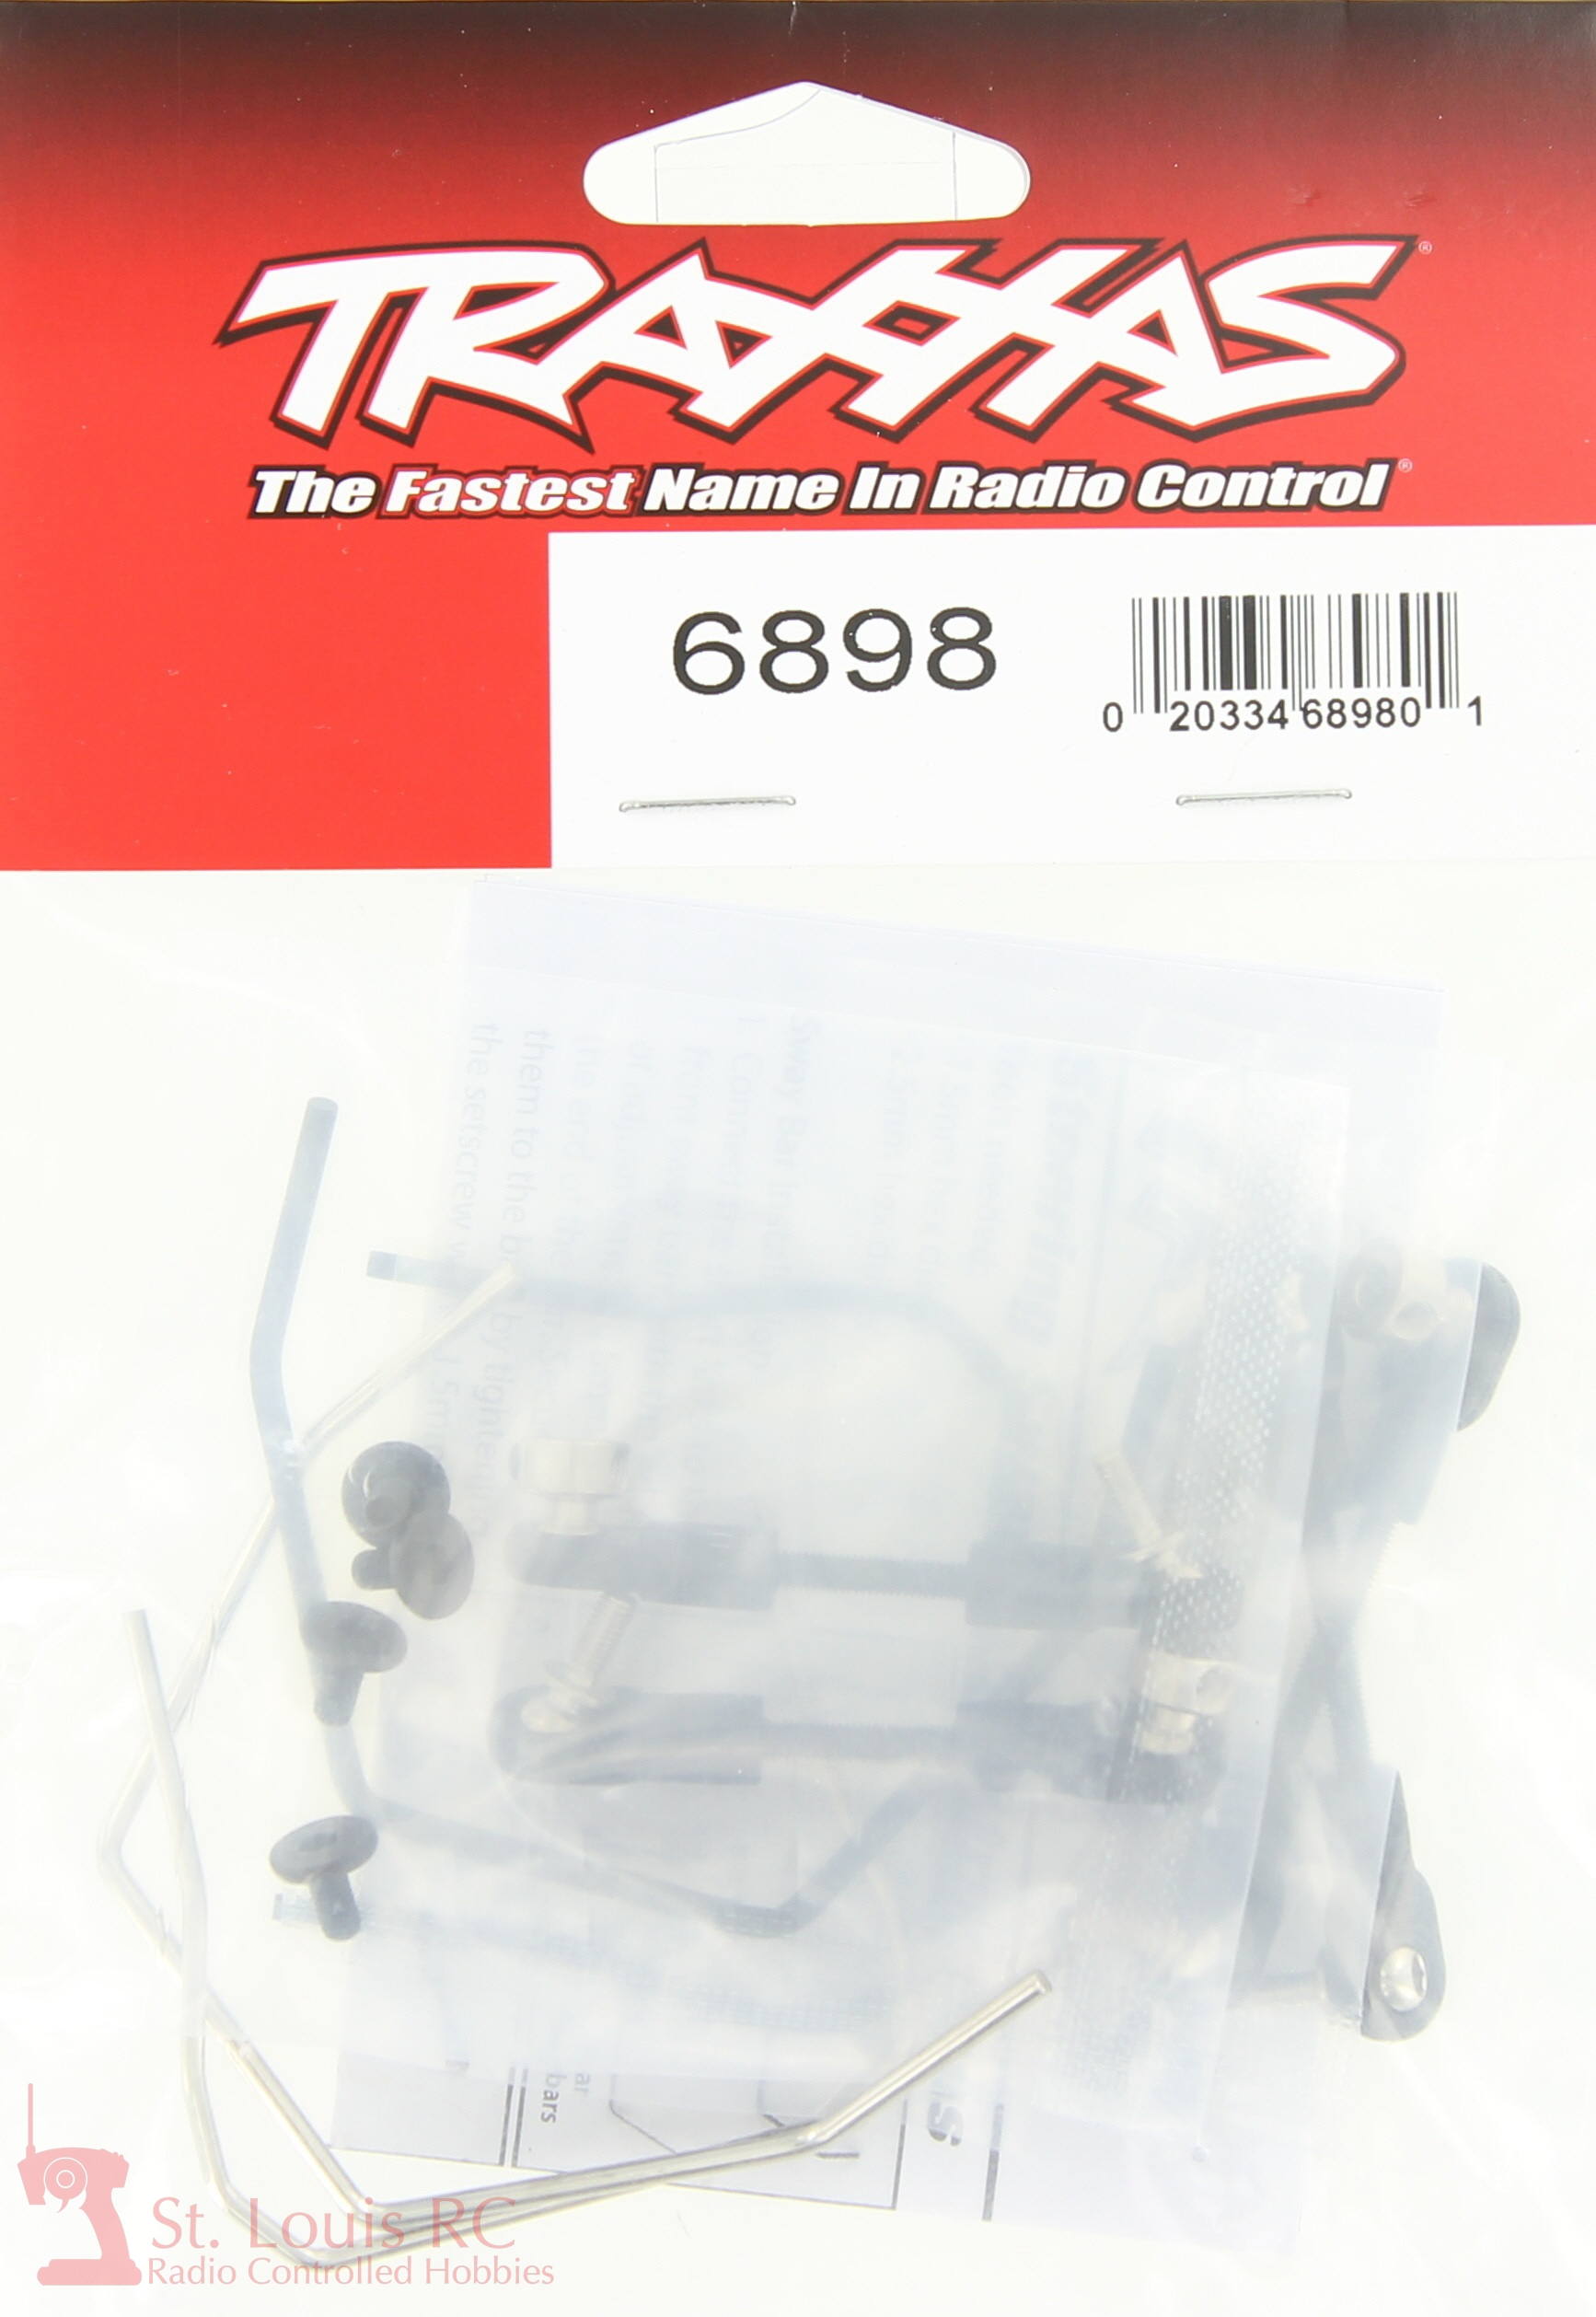 traxxas 6898 sway bar kit slash 4x4 new in package - 6898